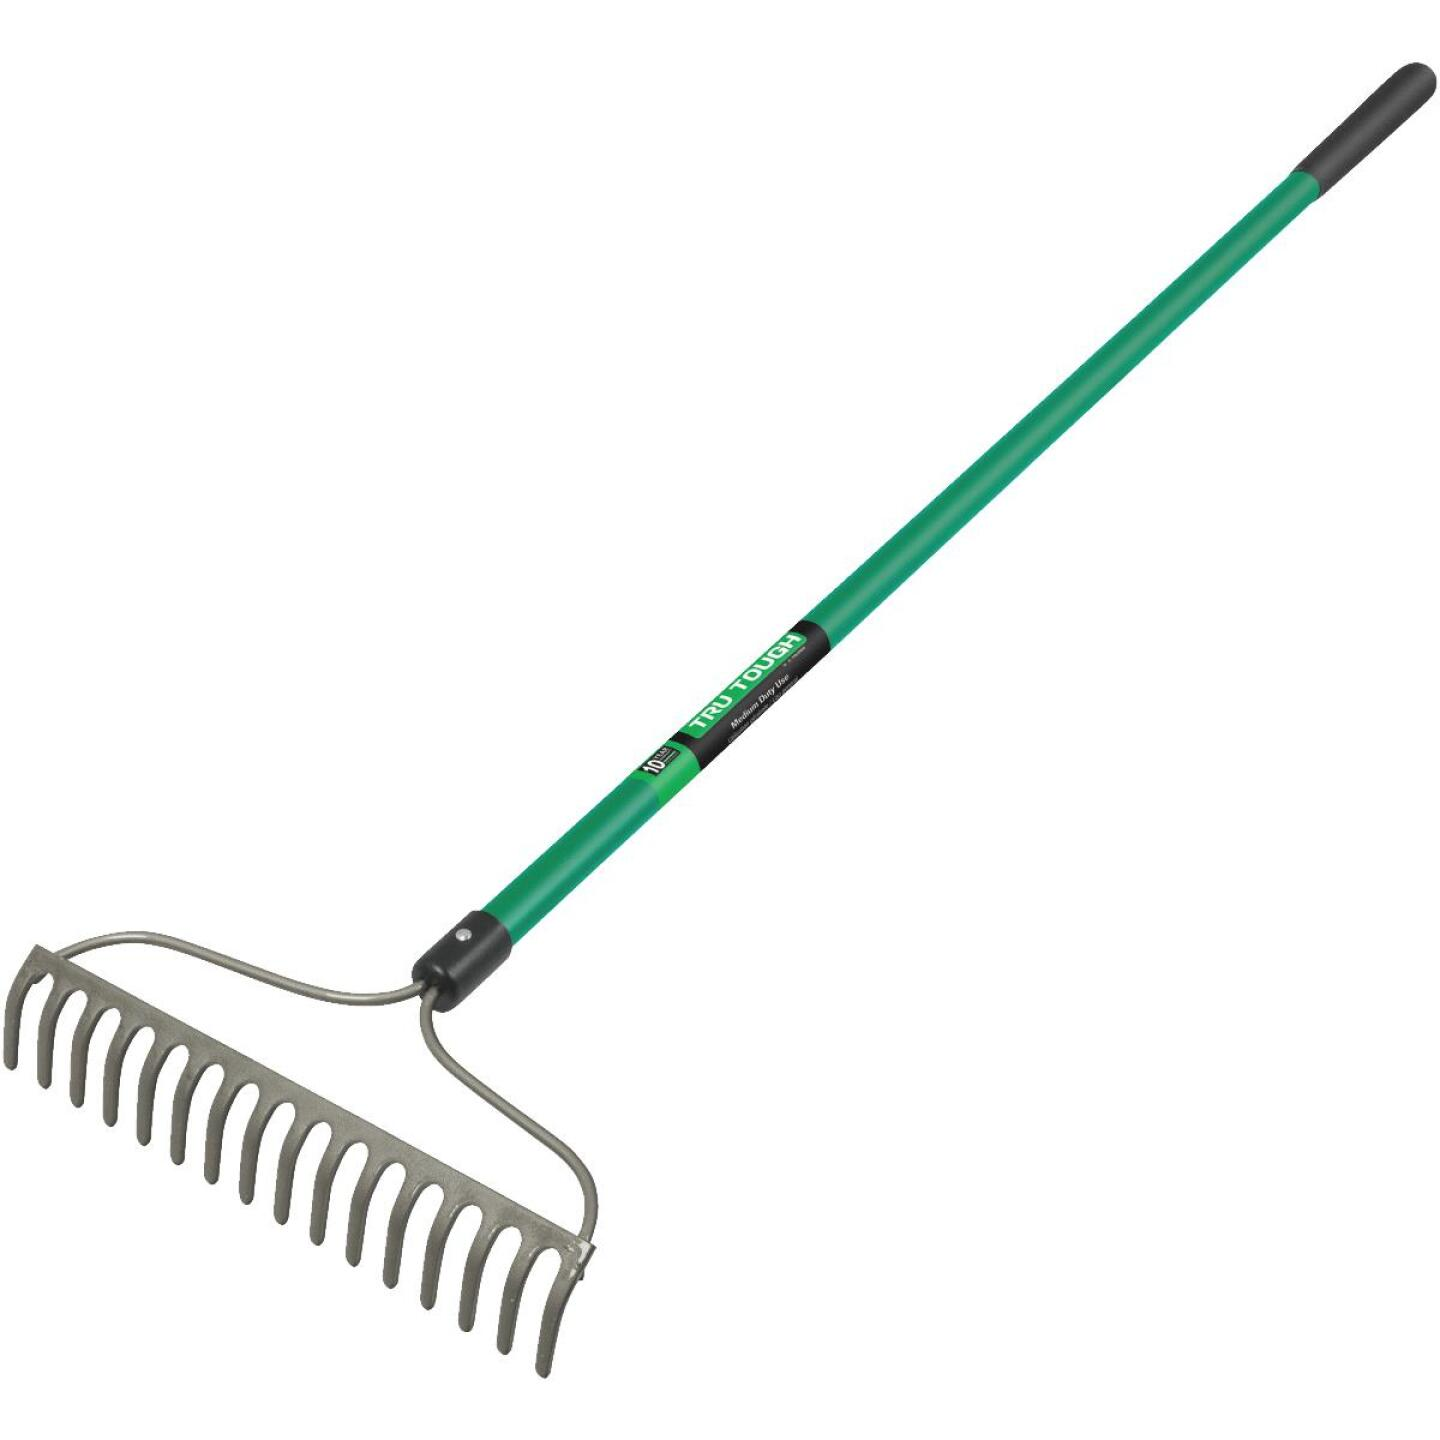 Tru Tough 15.5 In. Steel Bow Garden Rake (16-Tine) Image 1